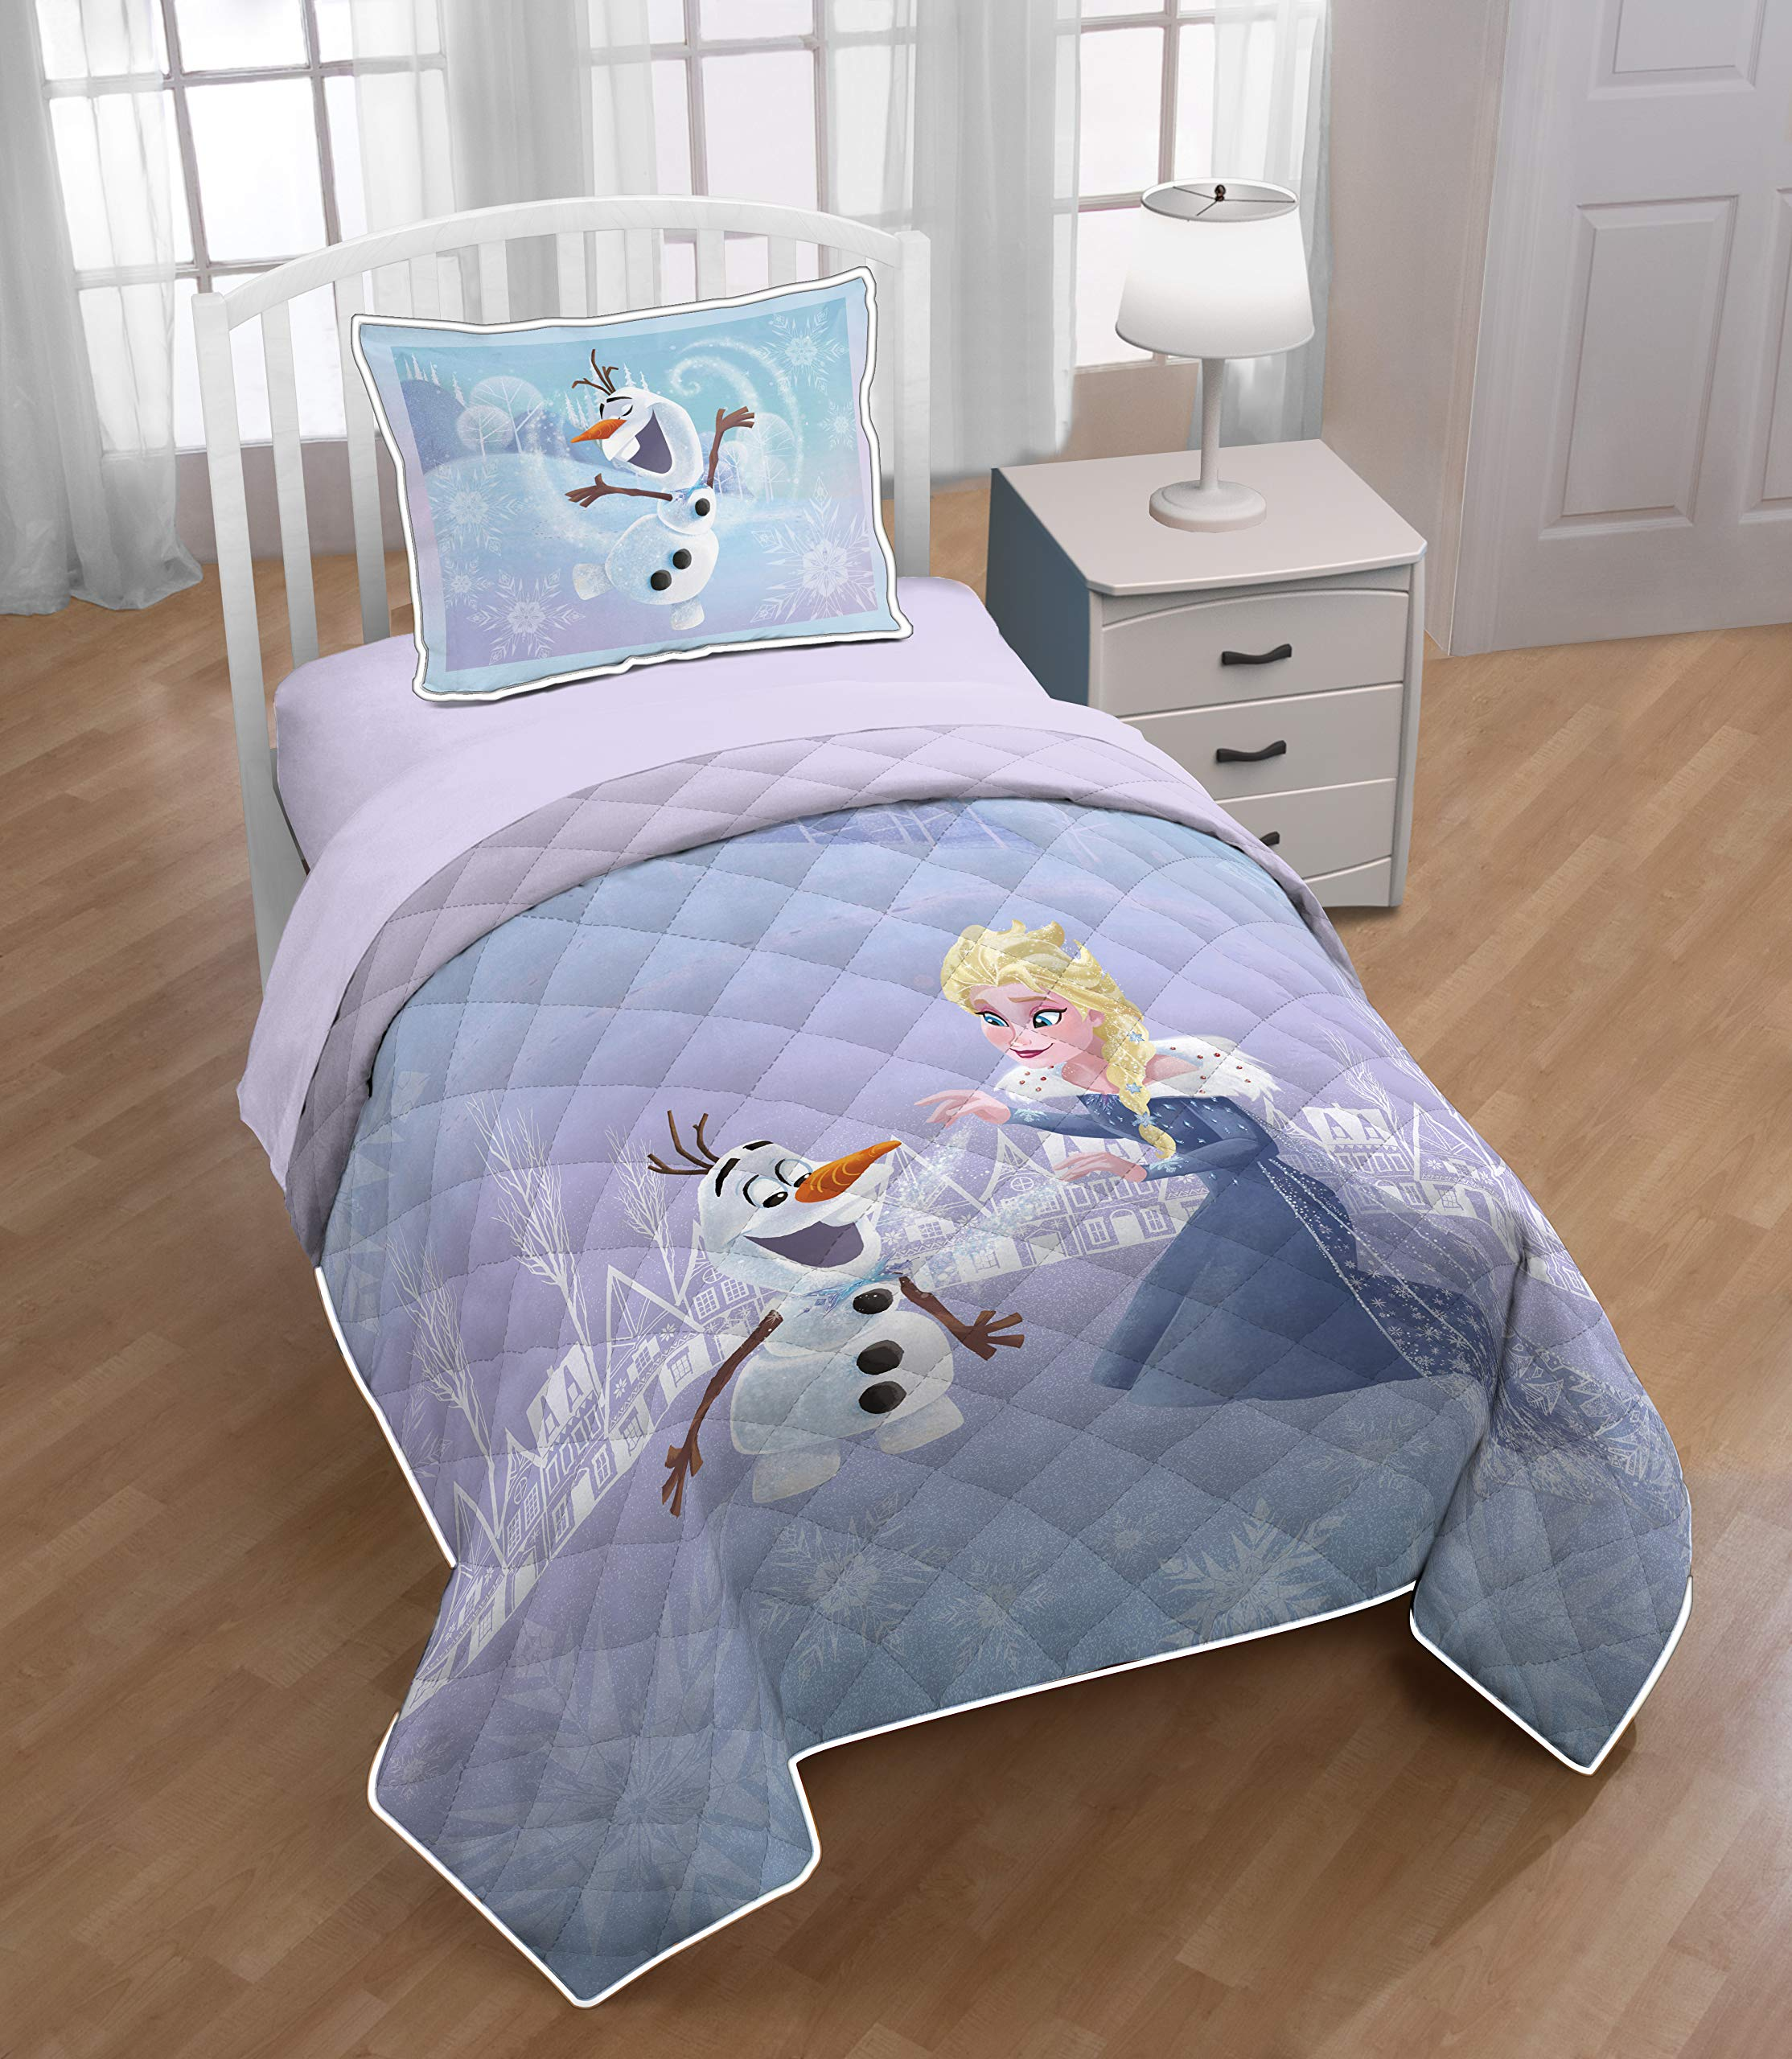 Disney Frozen Twin/Full Quilt & Sham Set - Super Soft Kids Bedding Features Elsa and Olaf - Fade Resistant Microfiber (Official Product) by Disney